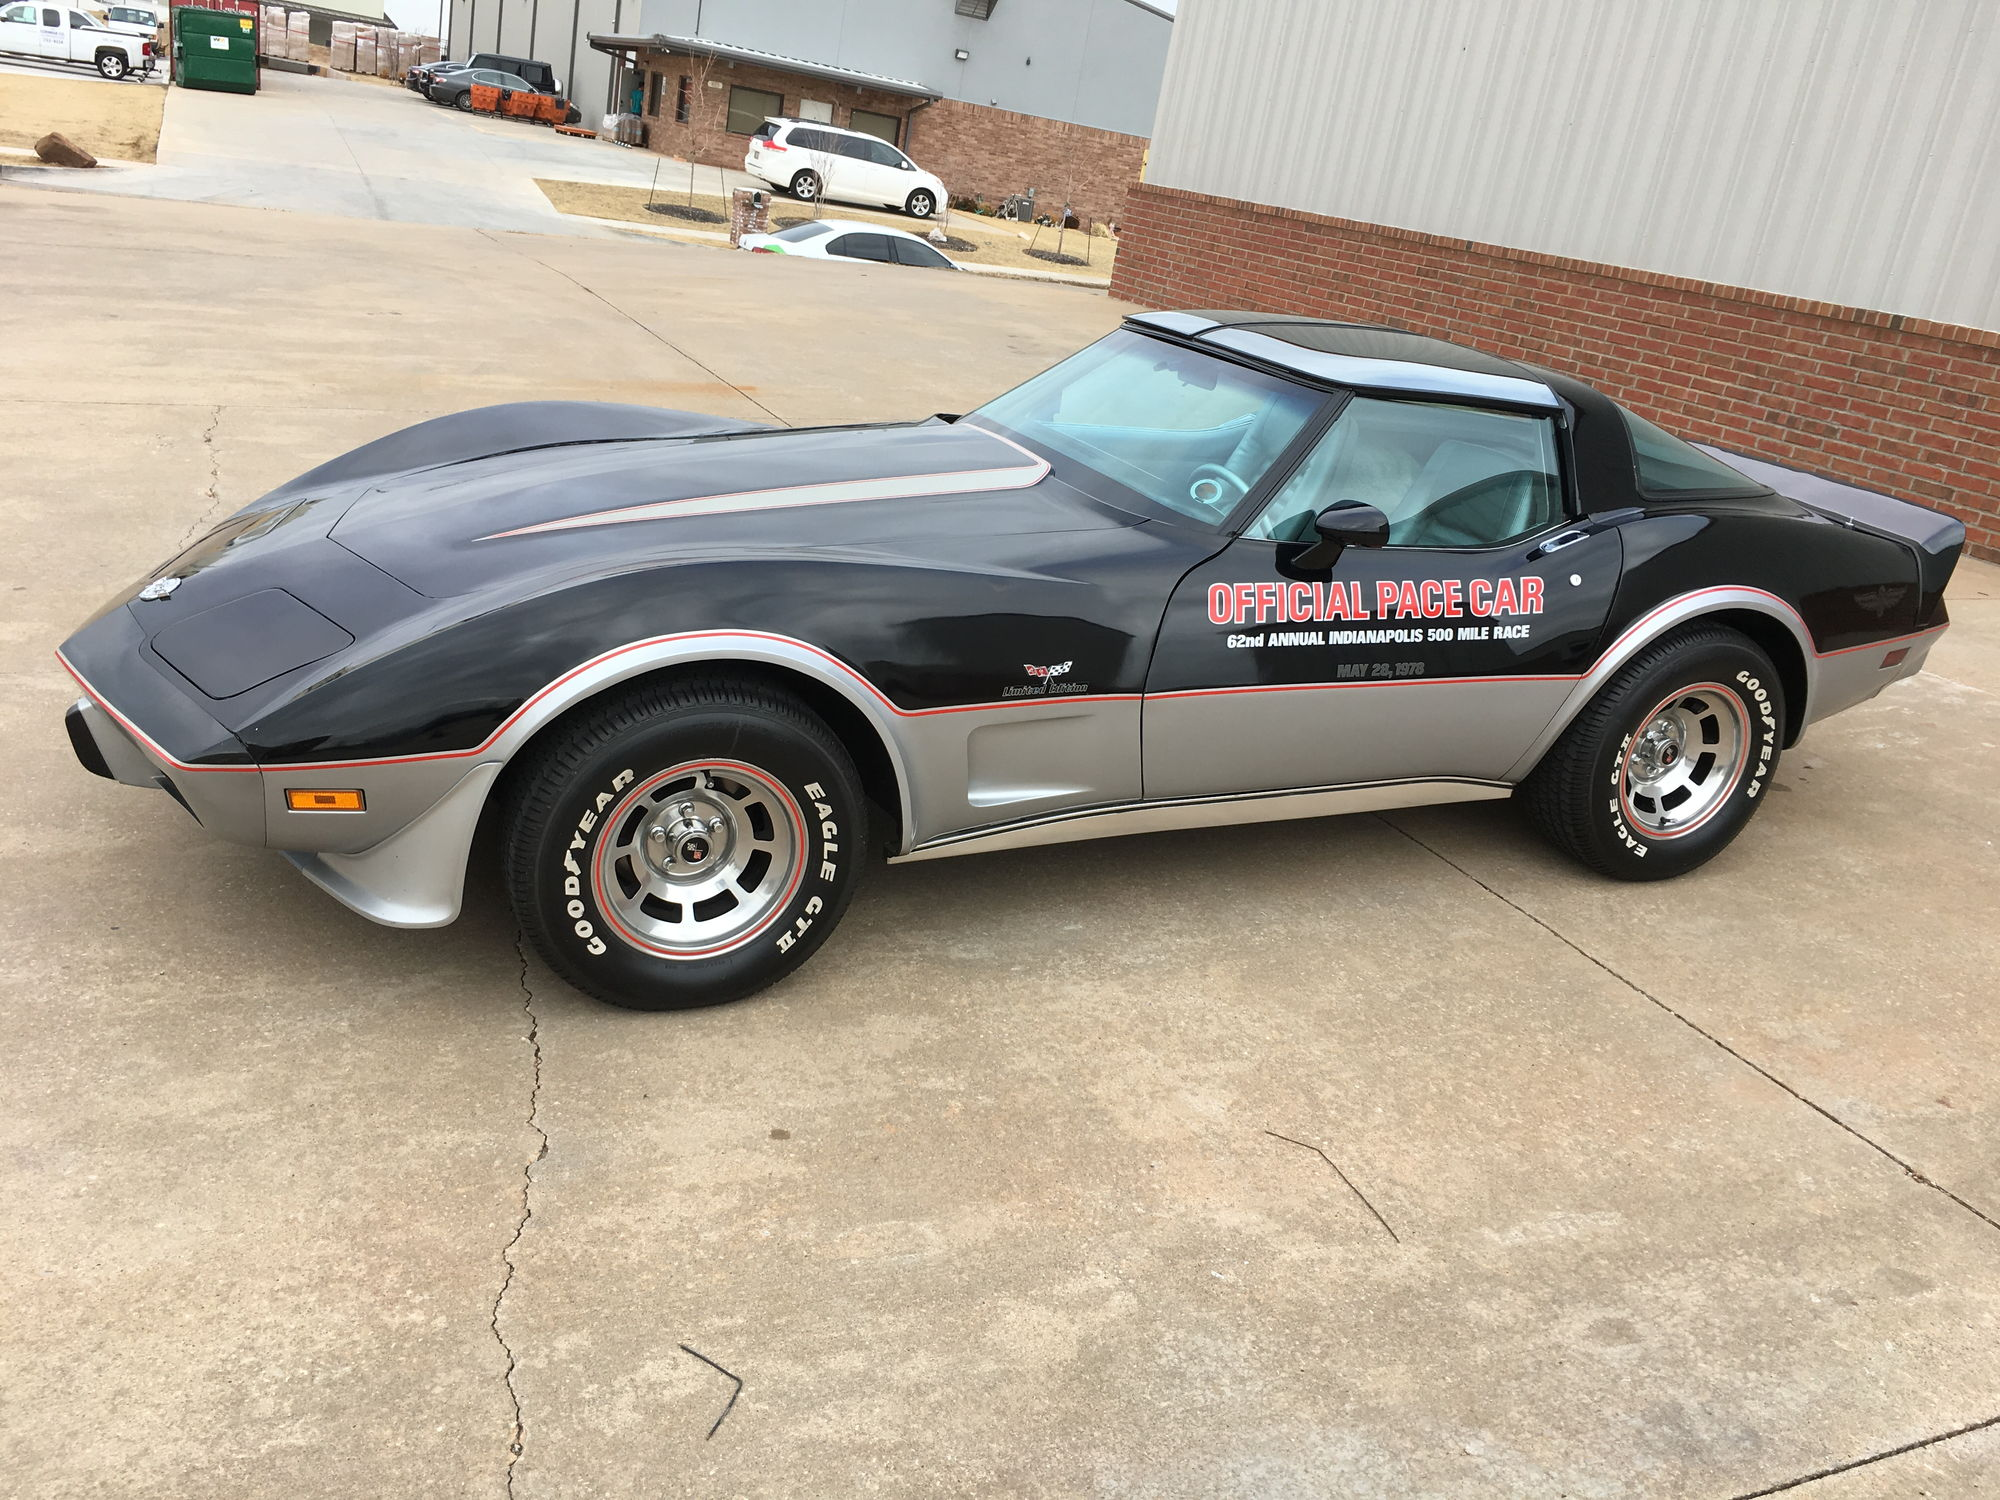 Price drop 1978 corvette pace car l48 automatic been family owned roughly 20 years however time has come to sale priced very reasonable at 25k